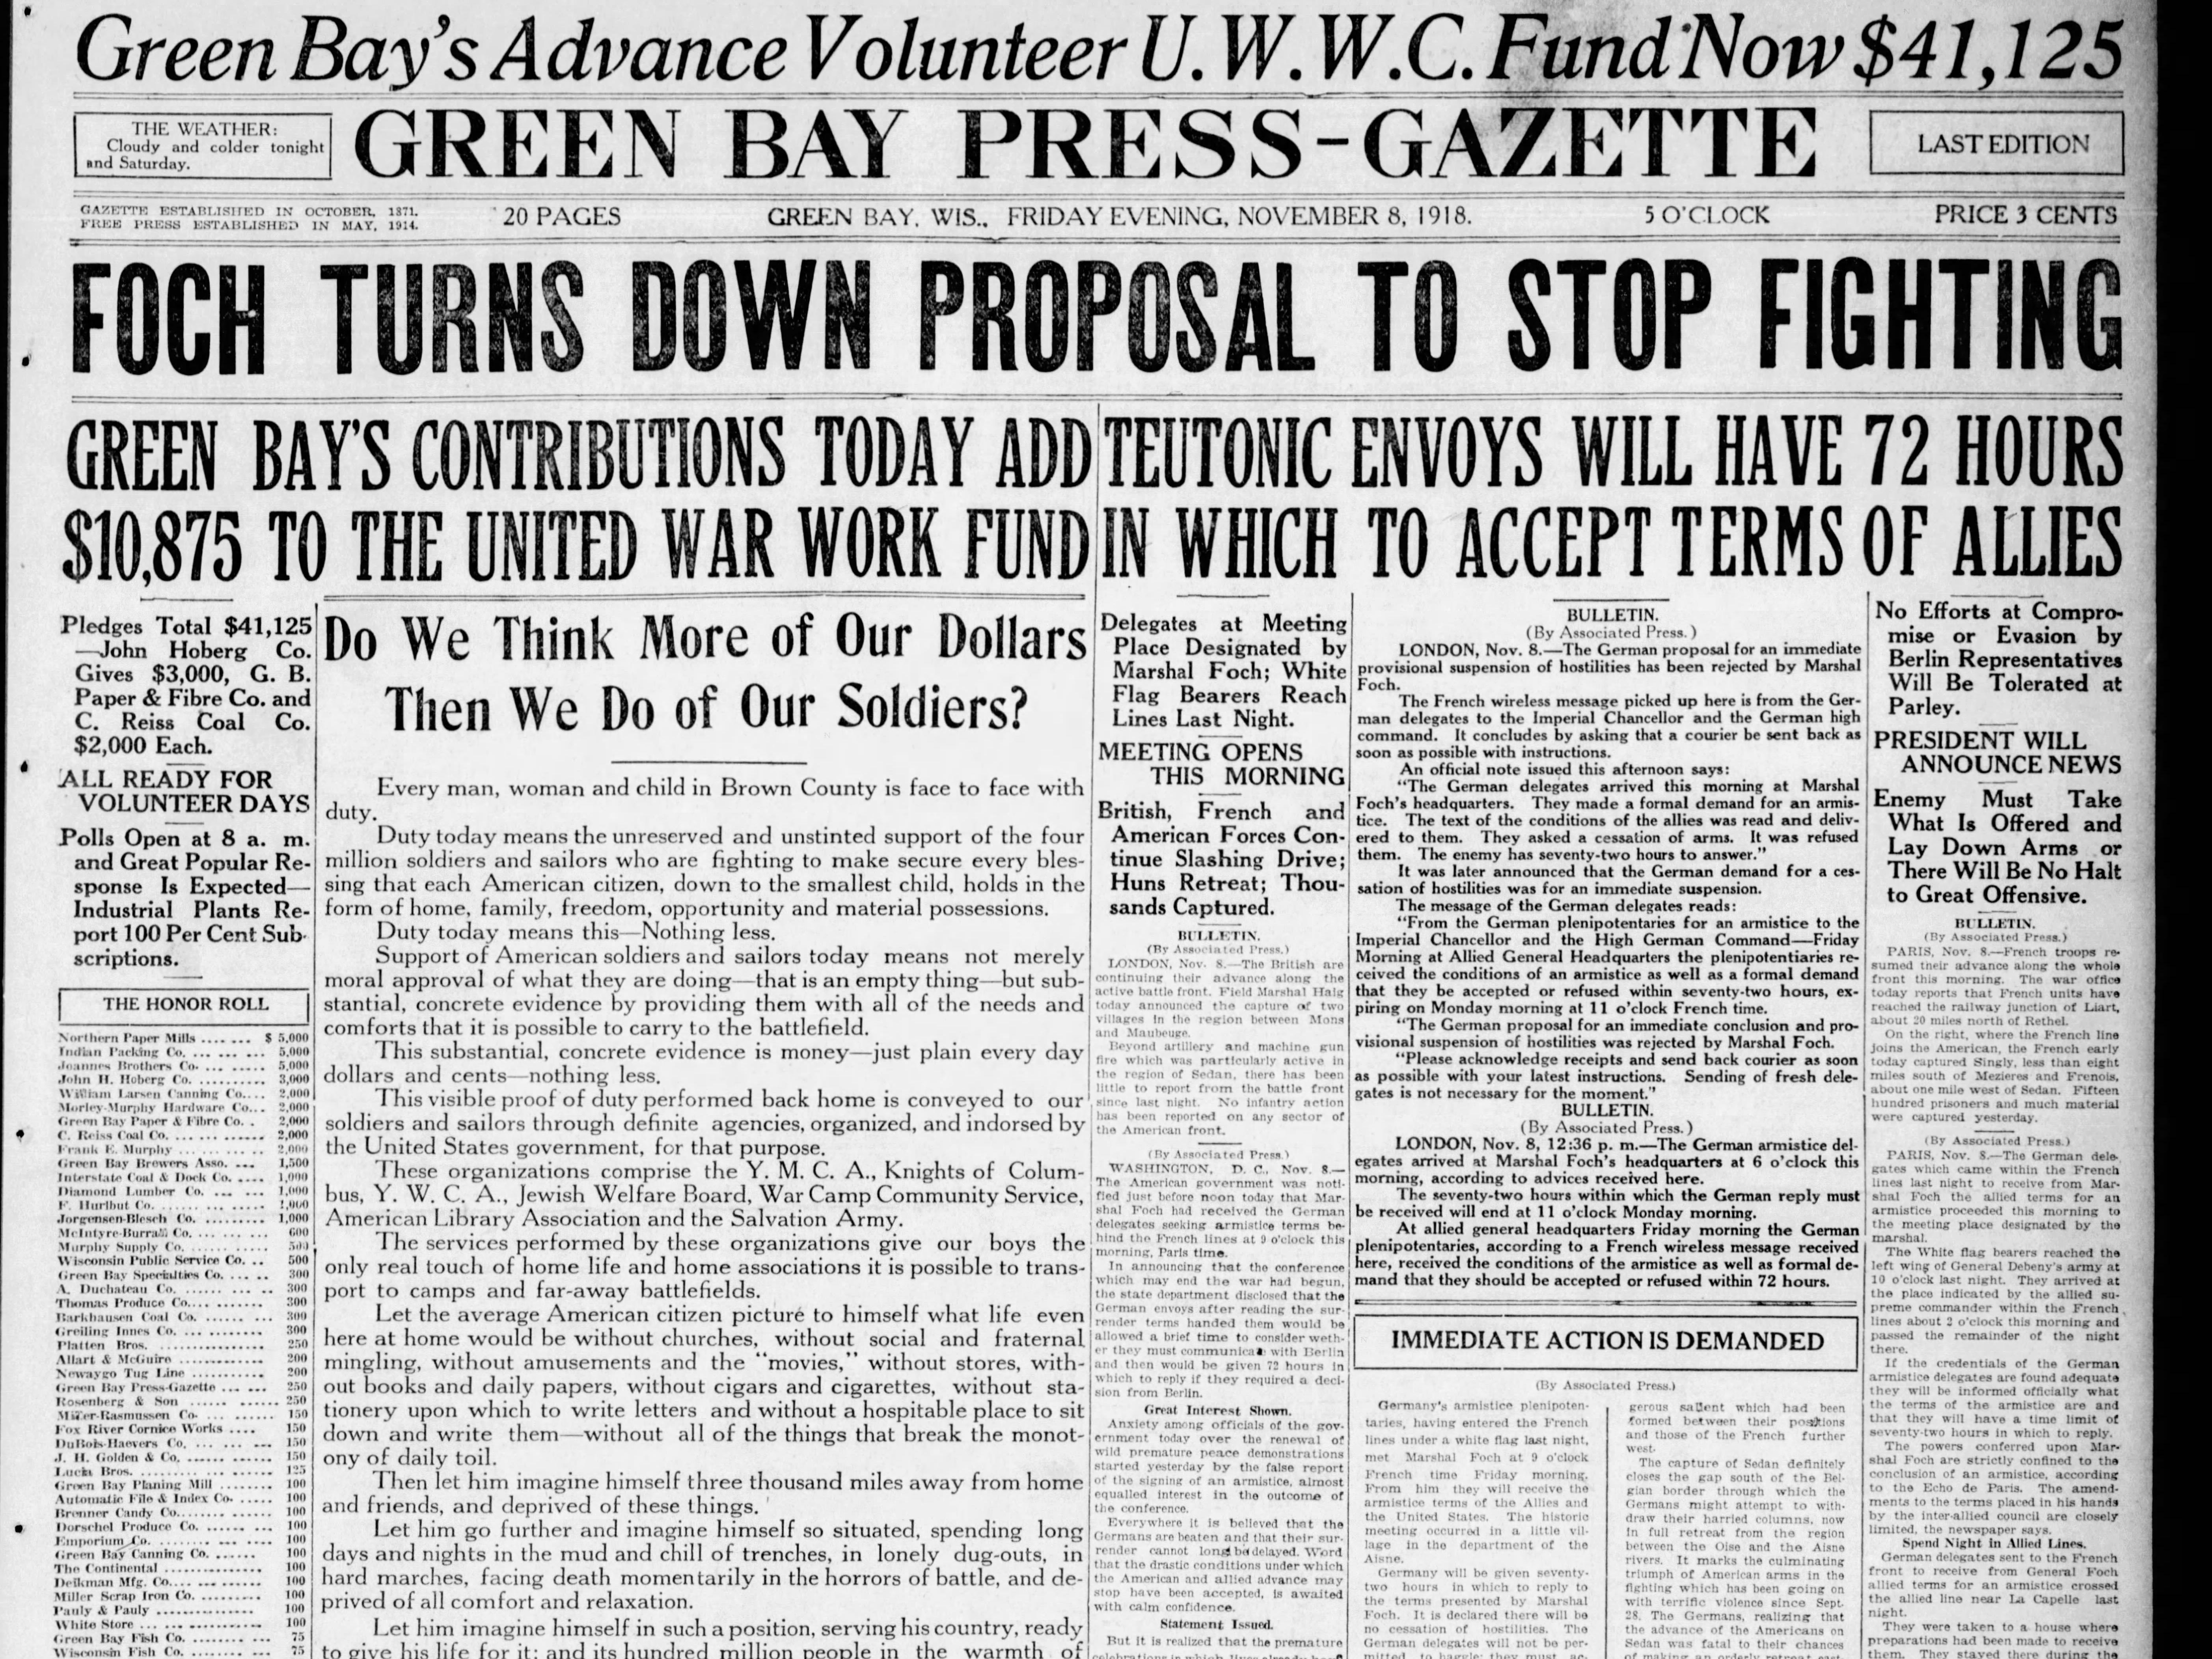 Today in History: Nov. 7, 1918